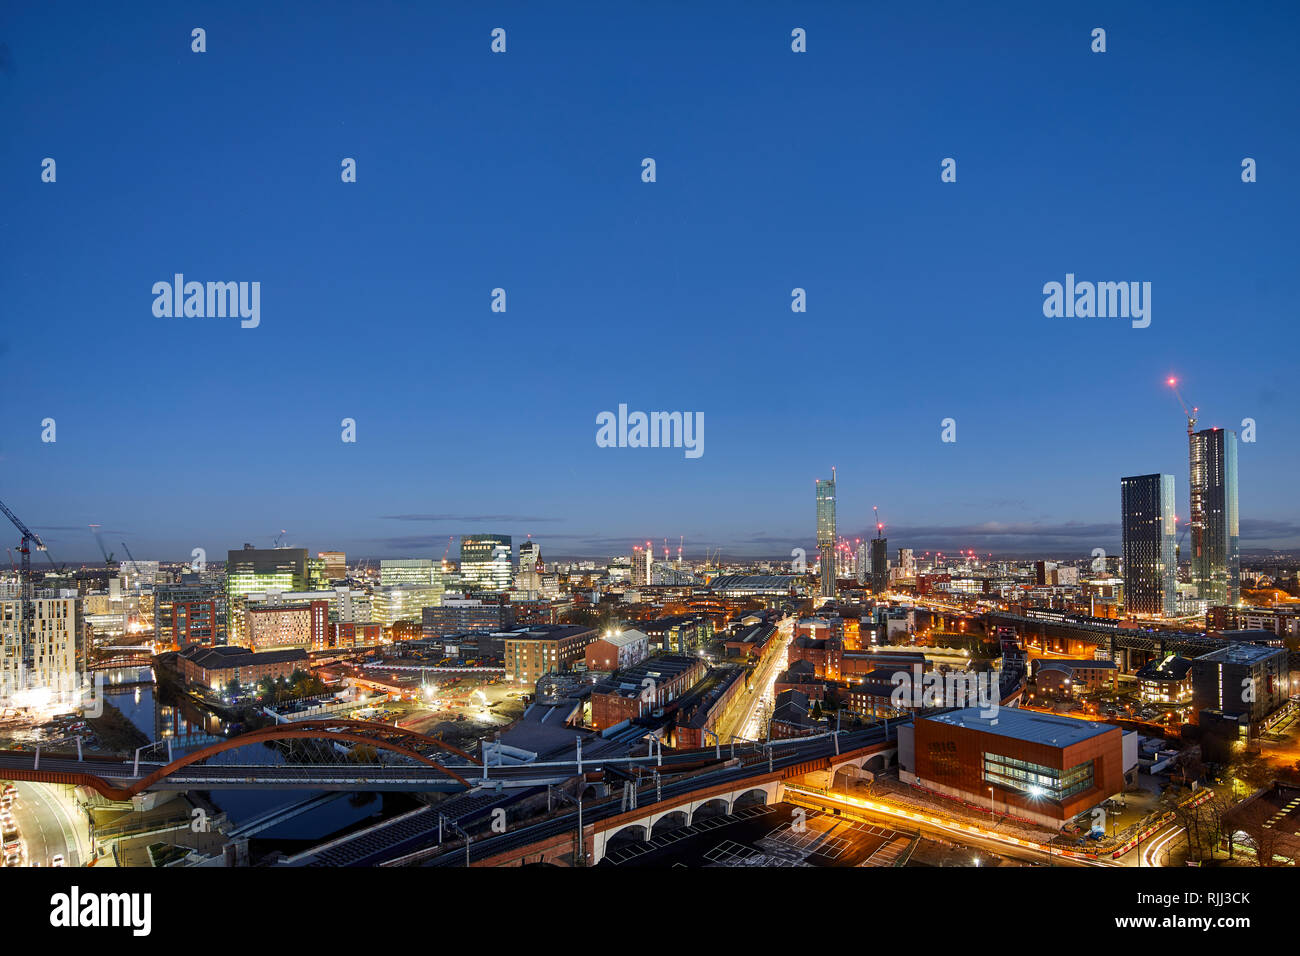 Manchester city centre skyline view across the rooftops from Salford  Beetham Tower, Liverpool Road, and MOSI Museum of Science and Industry site Stock Photo